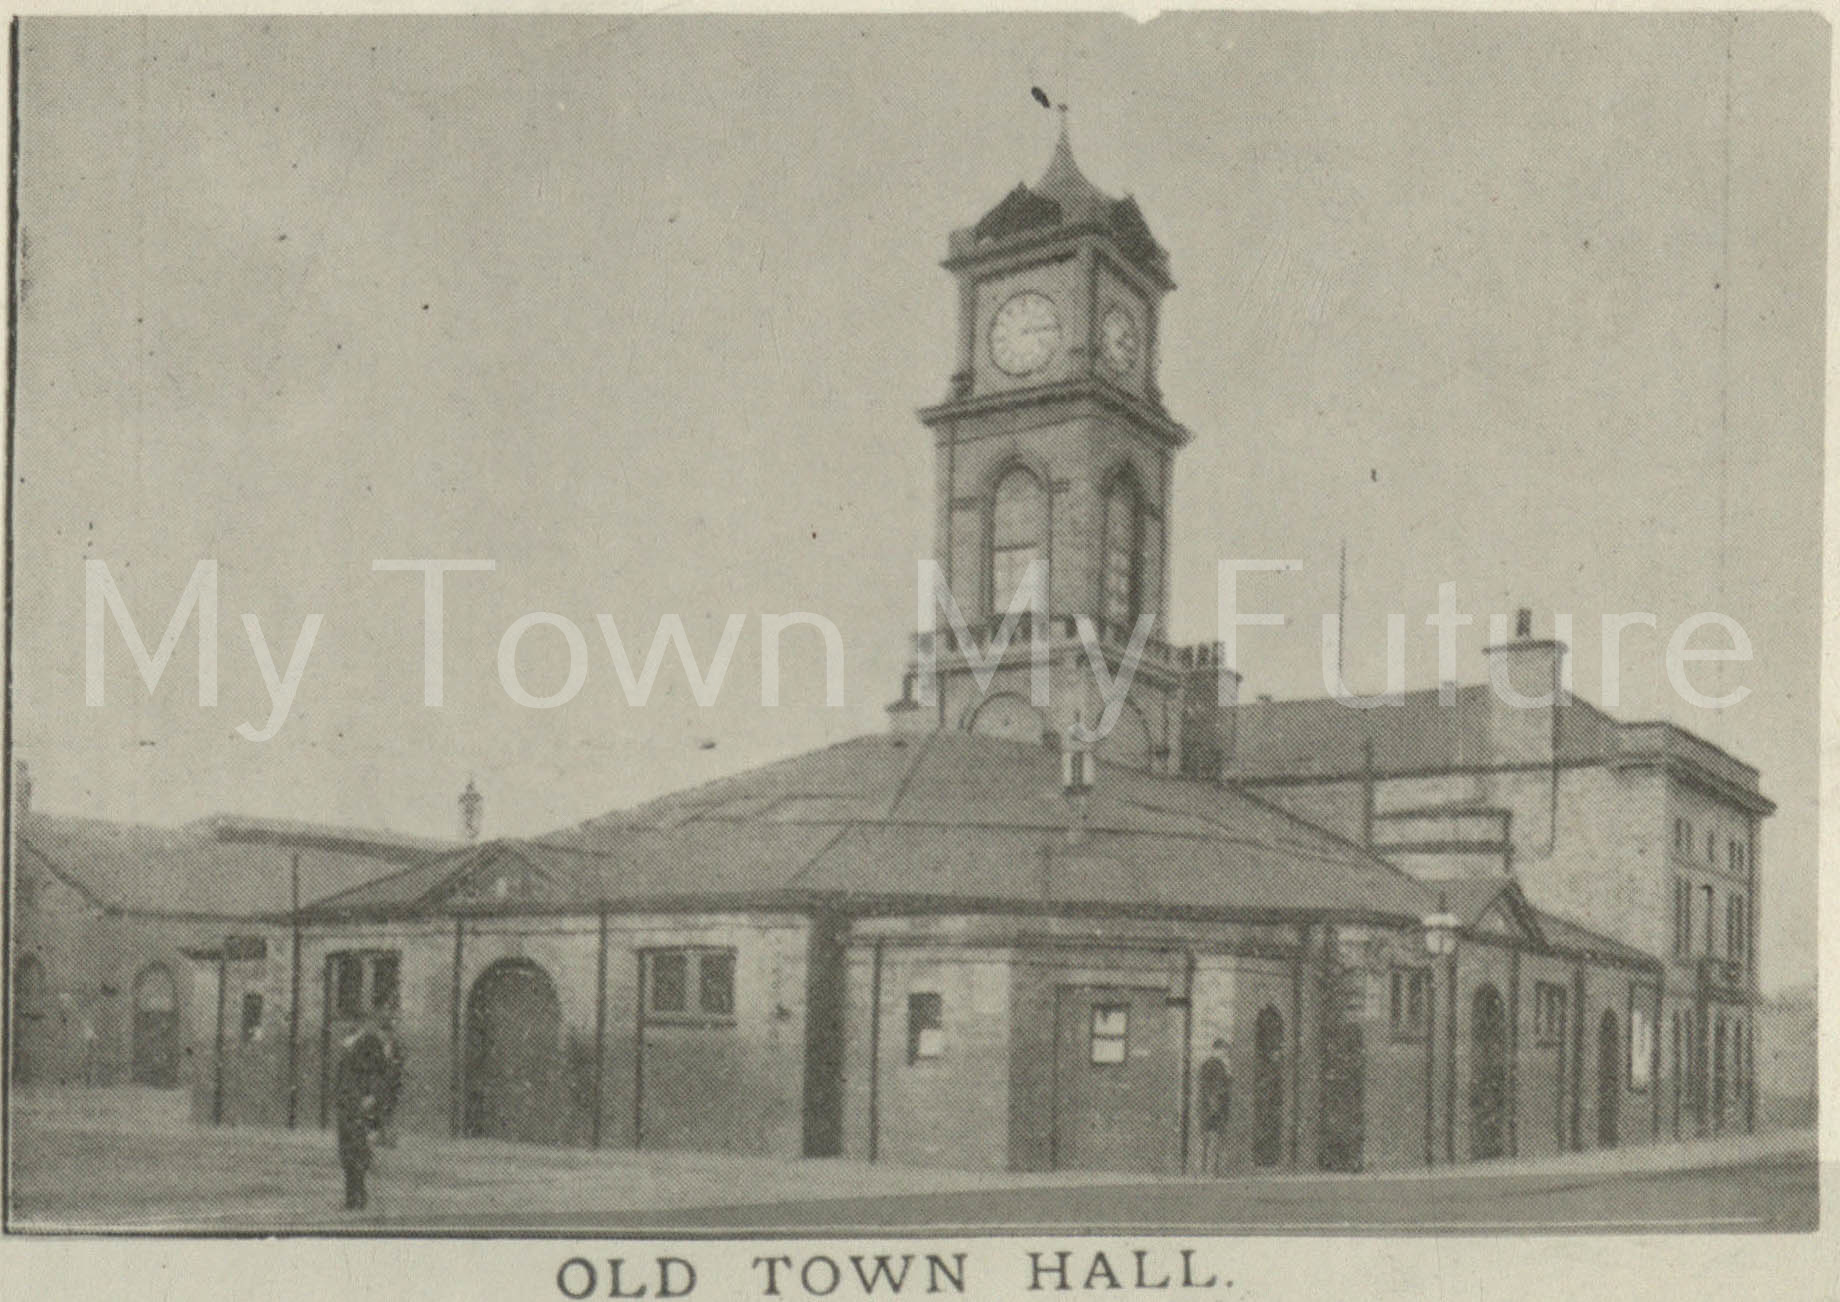 Old Town Hall (Building completed September 1846)